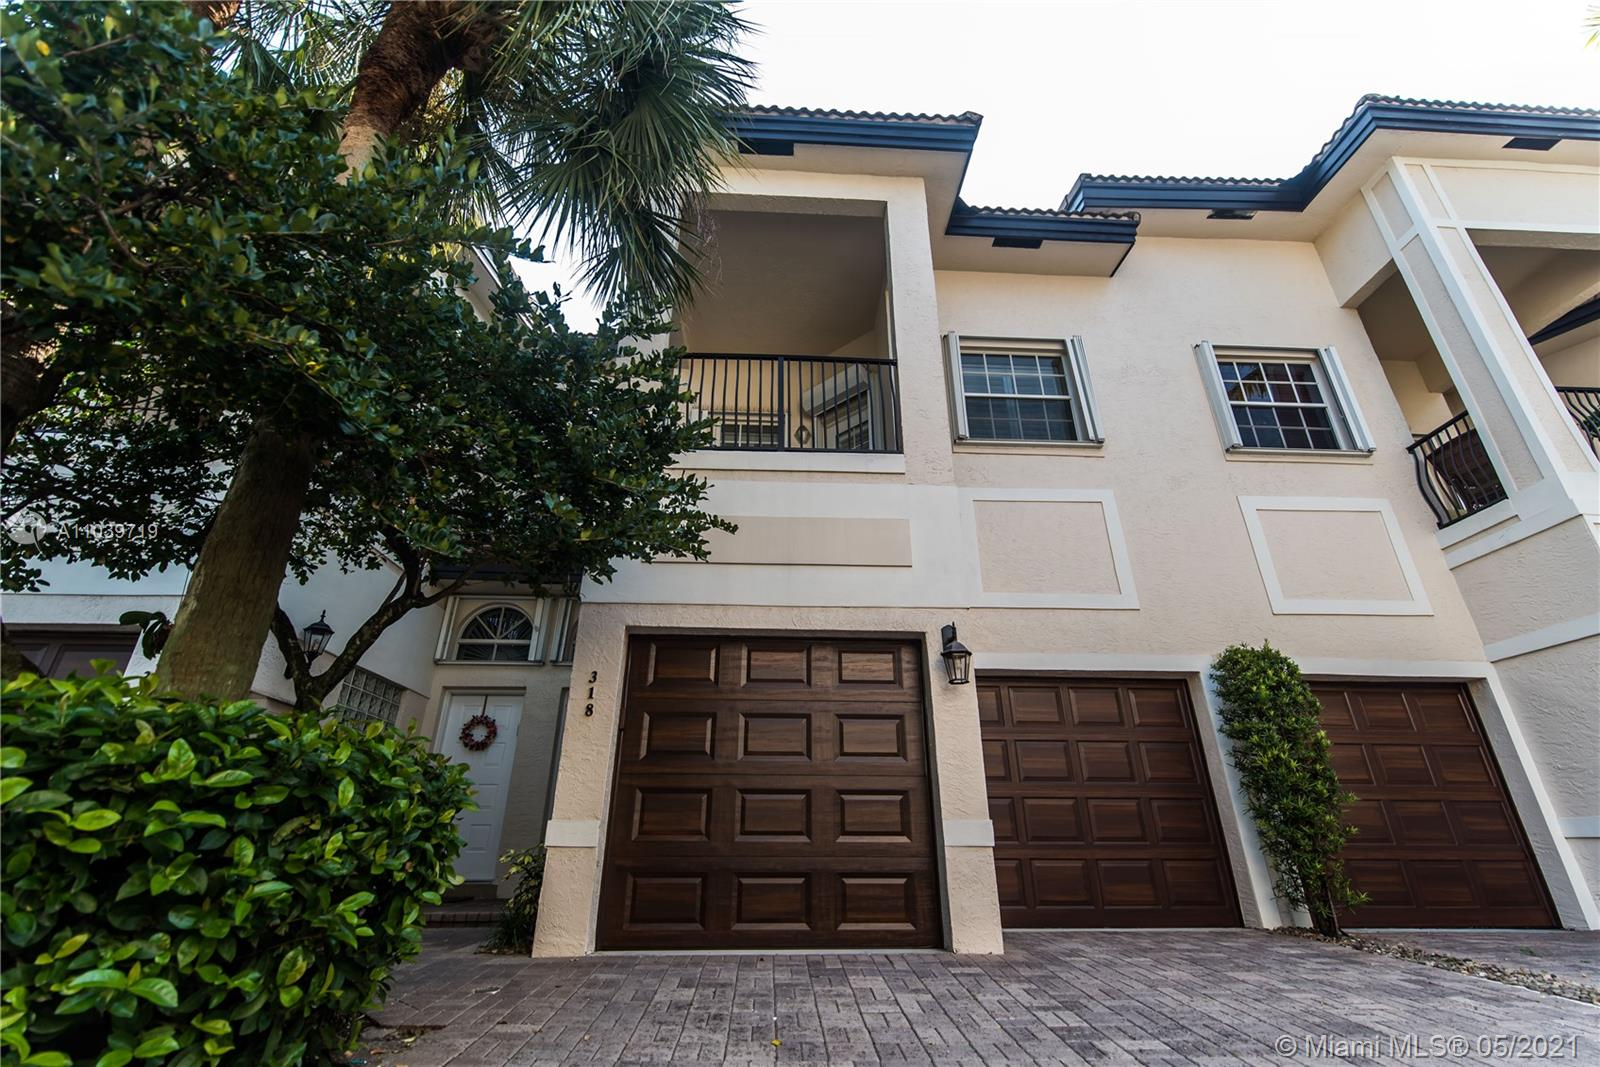 This three-bedroom, two-and-a-half bath townhome is located in one of few fully gated communities just steps away from Fresh Market and walking distance to the shops and restaurants of Las Olas Boulevard. The PERFECT location in a private, quiet community! The first floor has real wood floors, a half bath,gas fireplace and wood stairs to the second floor. Kitchen includes a gas stove,new Bosch appliances and custom wood cabinets. Upgraded designer details and Home Speaker System throughout. The large master suite has a private balcony,walk in closet and master bath that includes marble flooring,spa tub,separate shower and dual sinks. Outside the Chicago brick patio has piped in gas to support a built in grill and fire pit. The two-car garage adds storage. Community pool.